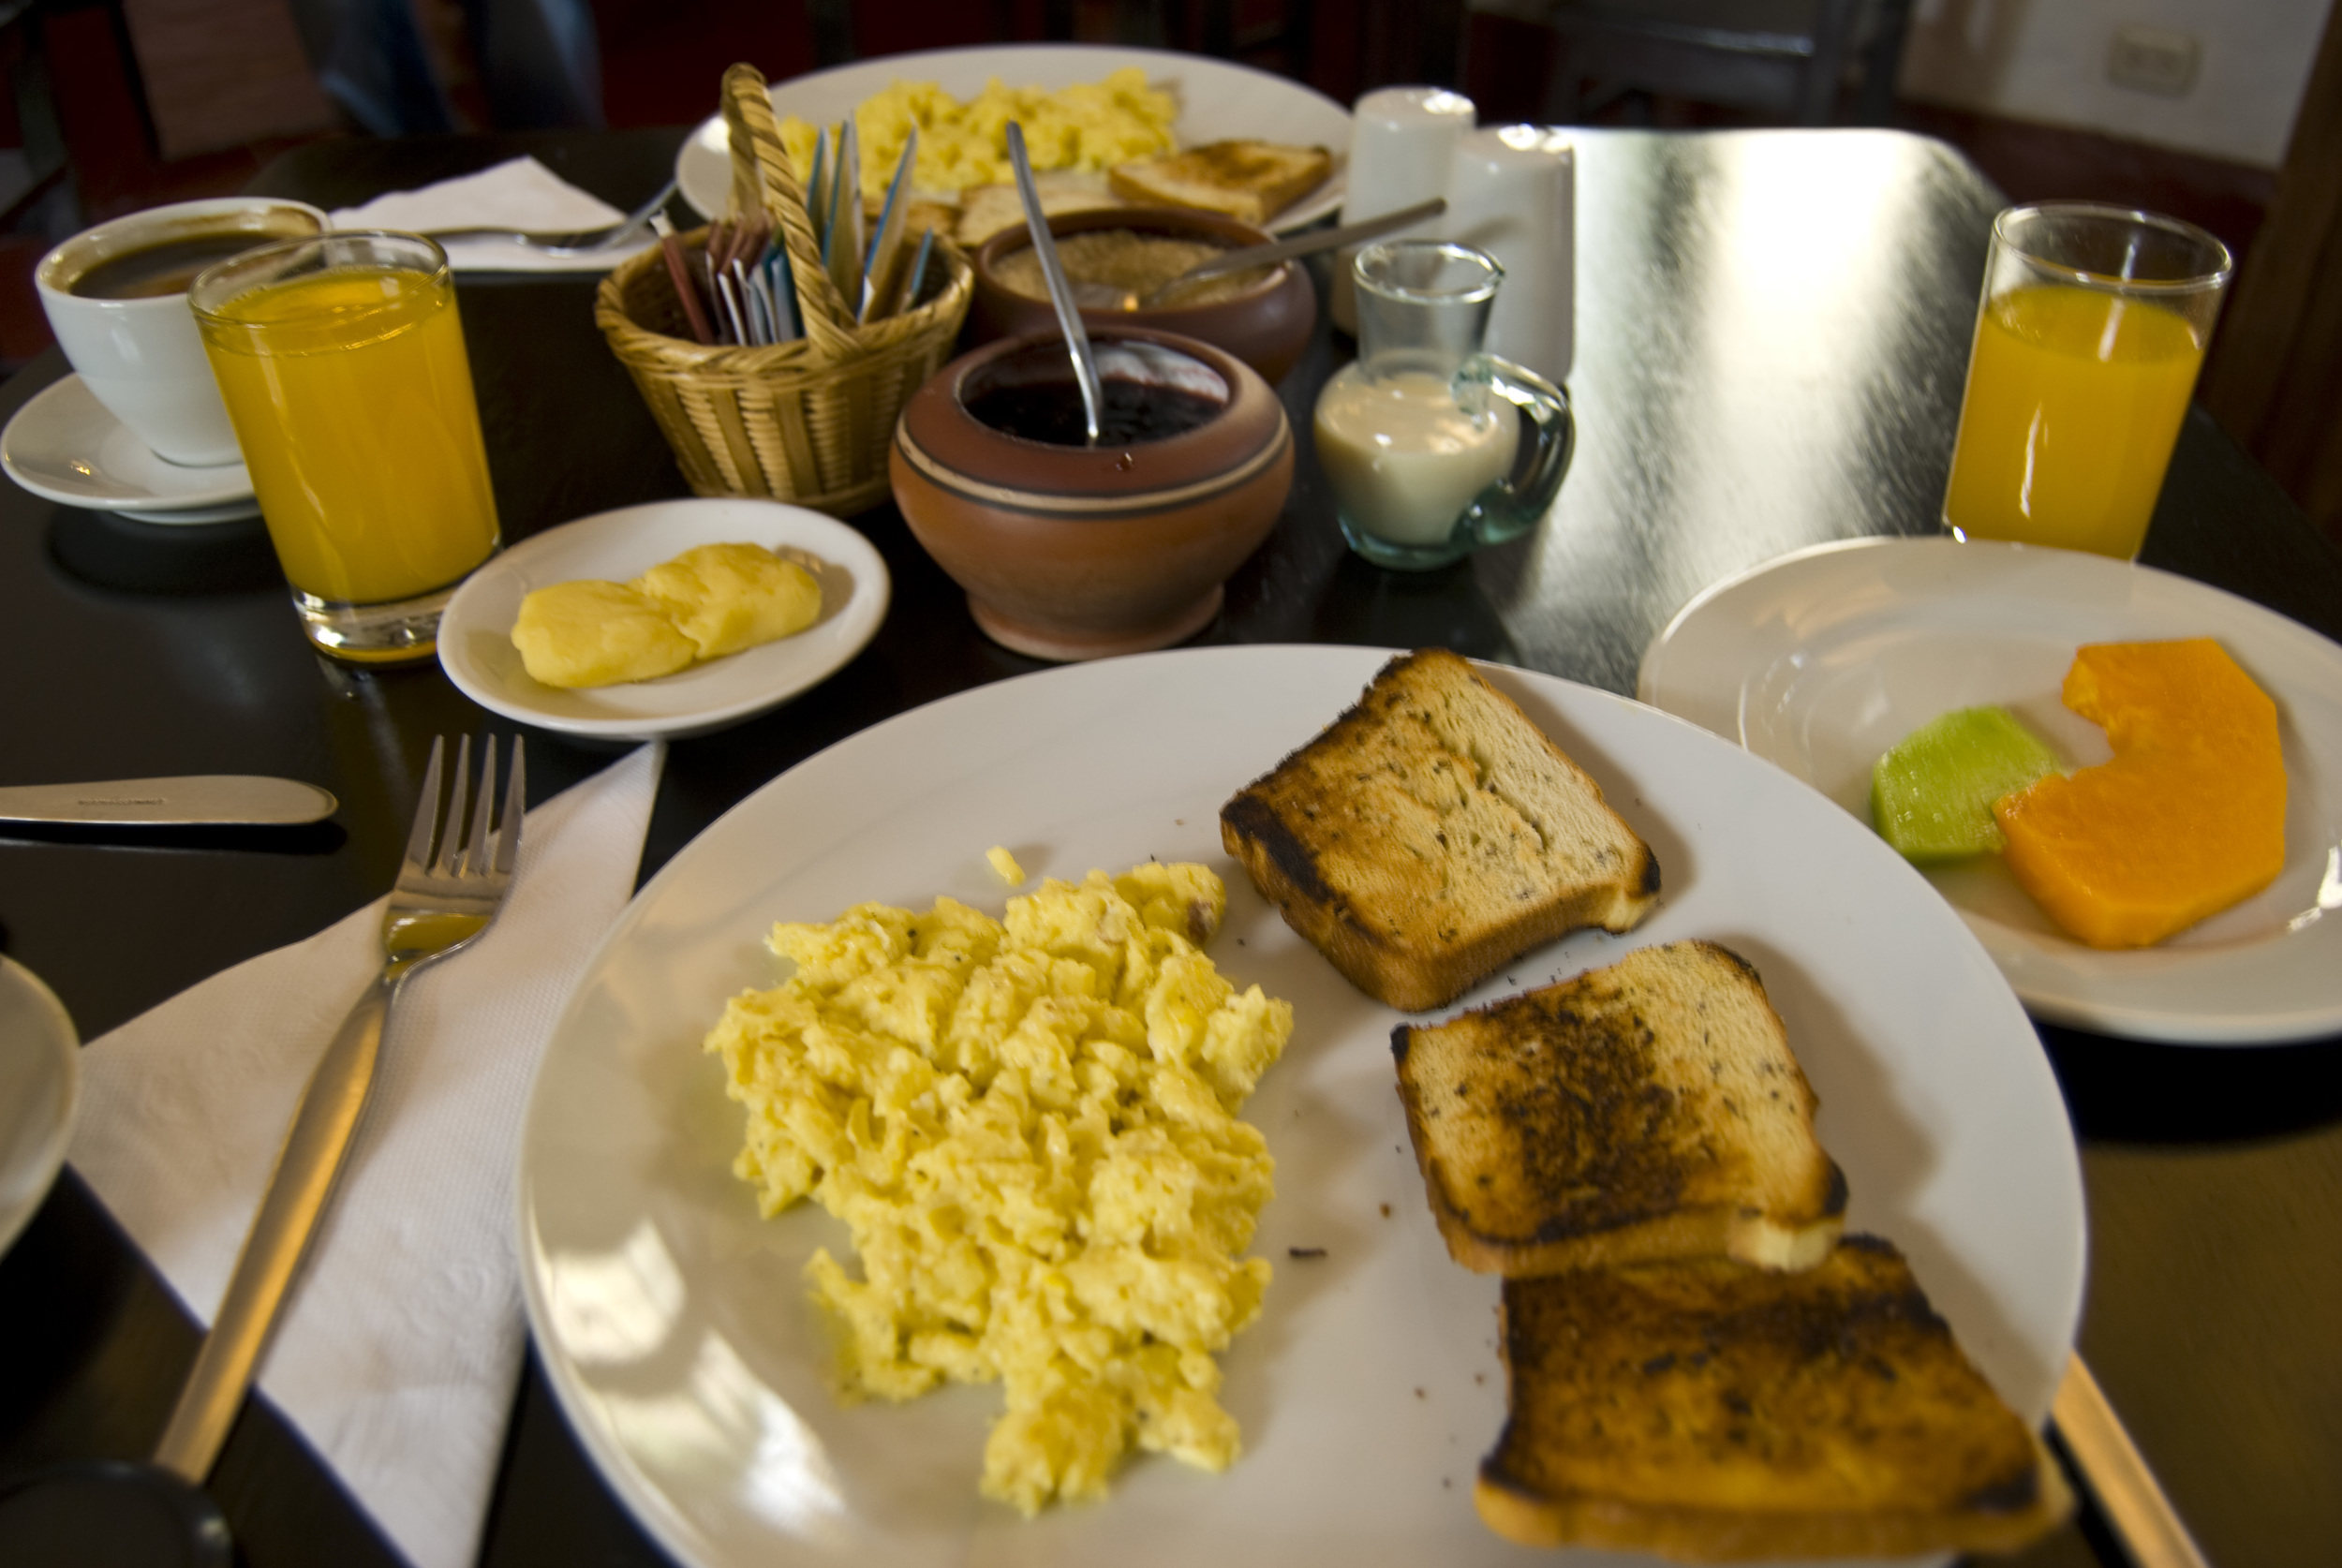 last-breakfast-in-ollanta_4120719798_o.jpg